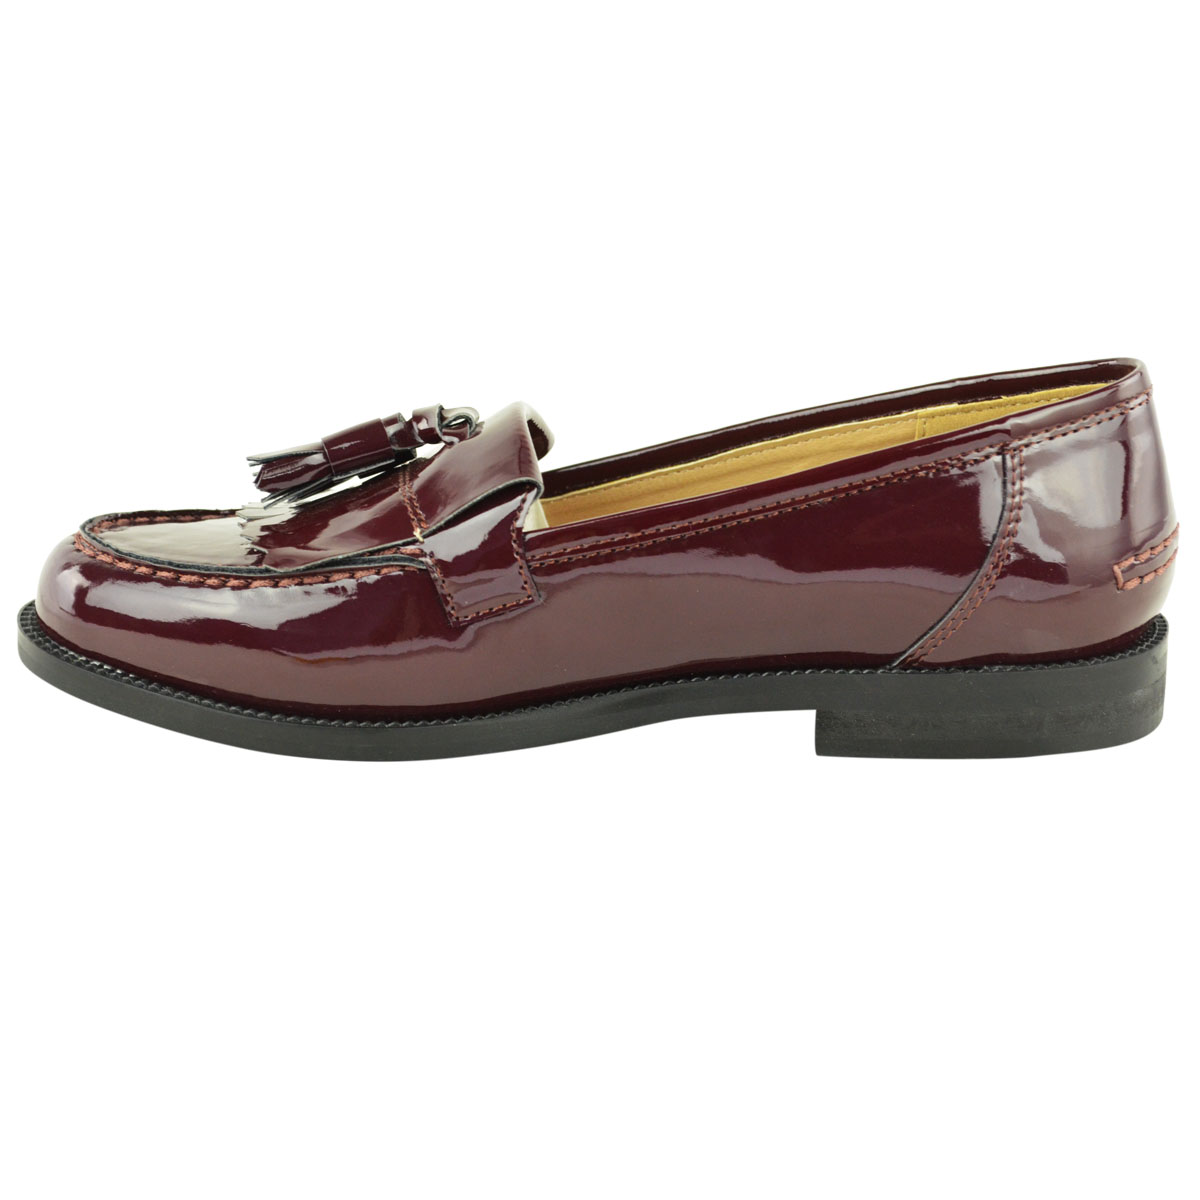 Womens-Ladies-Loafers-Brogues-Pumps-Casual-School-Office-Comfy-Work-Flats-Size thumbnail 36